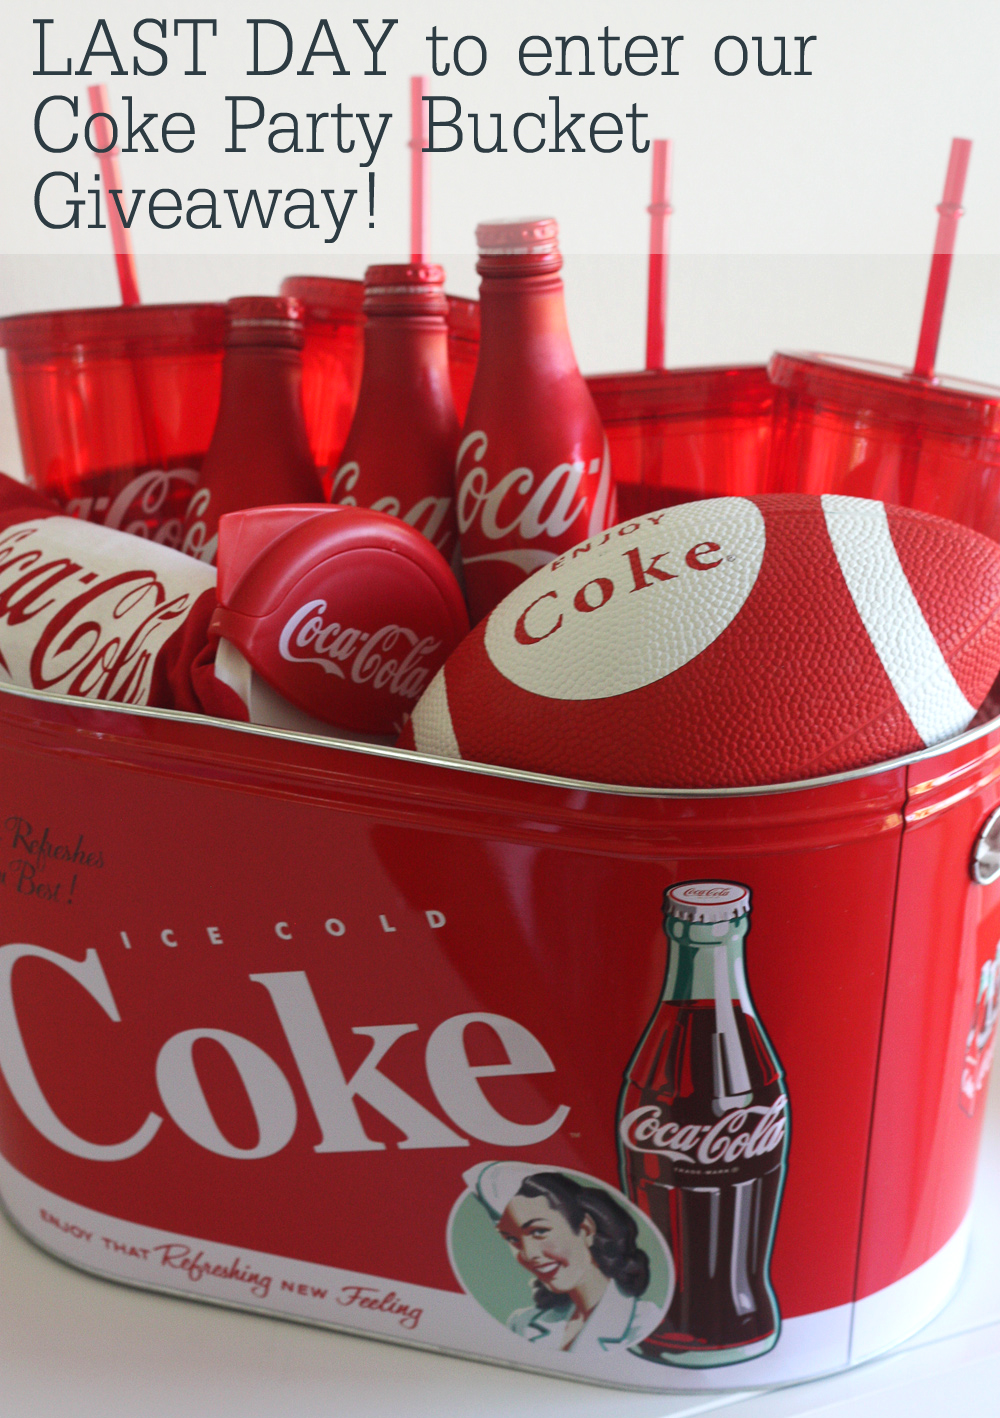 Giveaway Win A Coke Super Bowl Party Bucket Worth 100